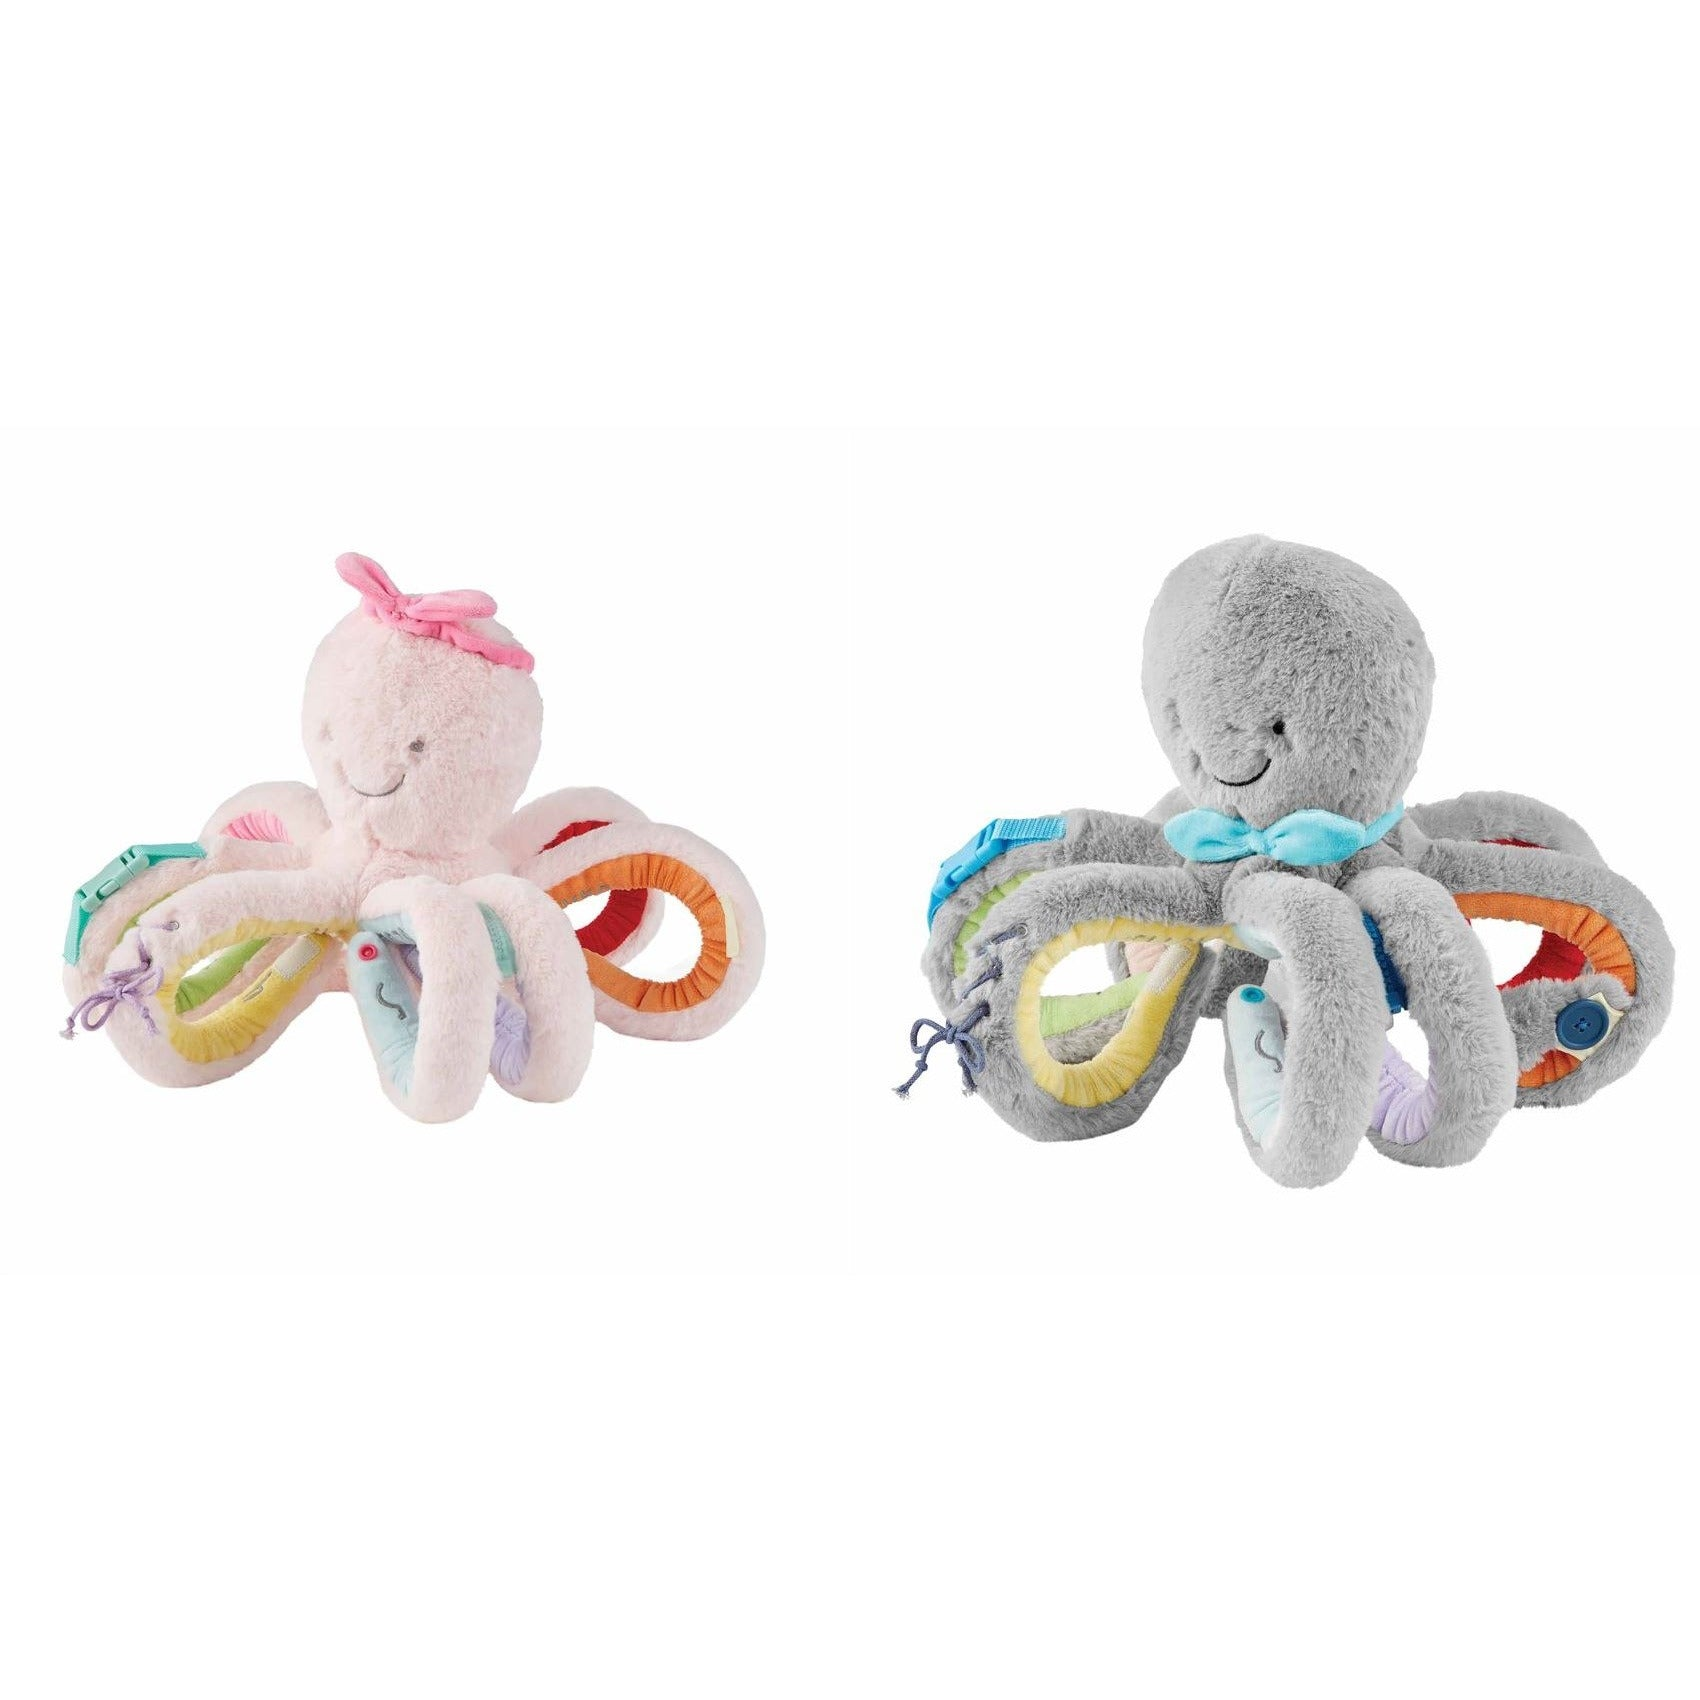 Octivity Pal Plush Pink or Grey